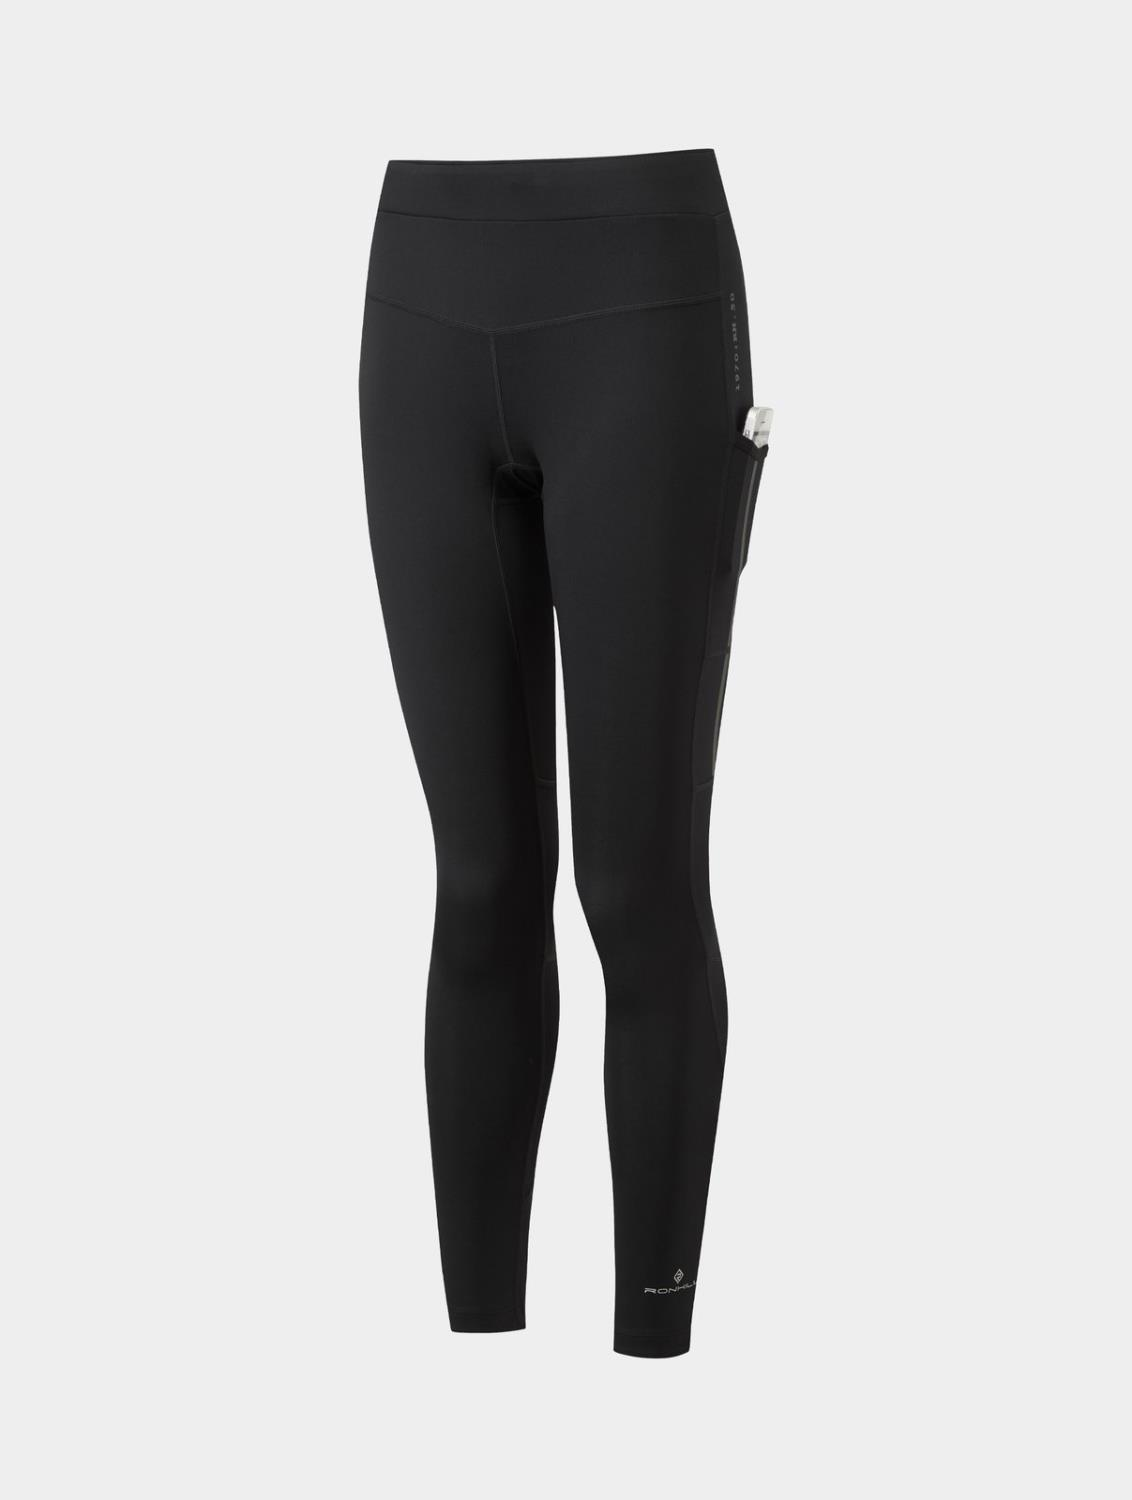 Ron Hill W Tech Revive stretch Tights